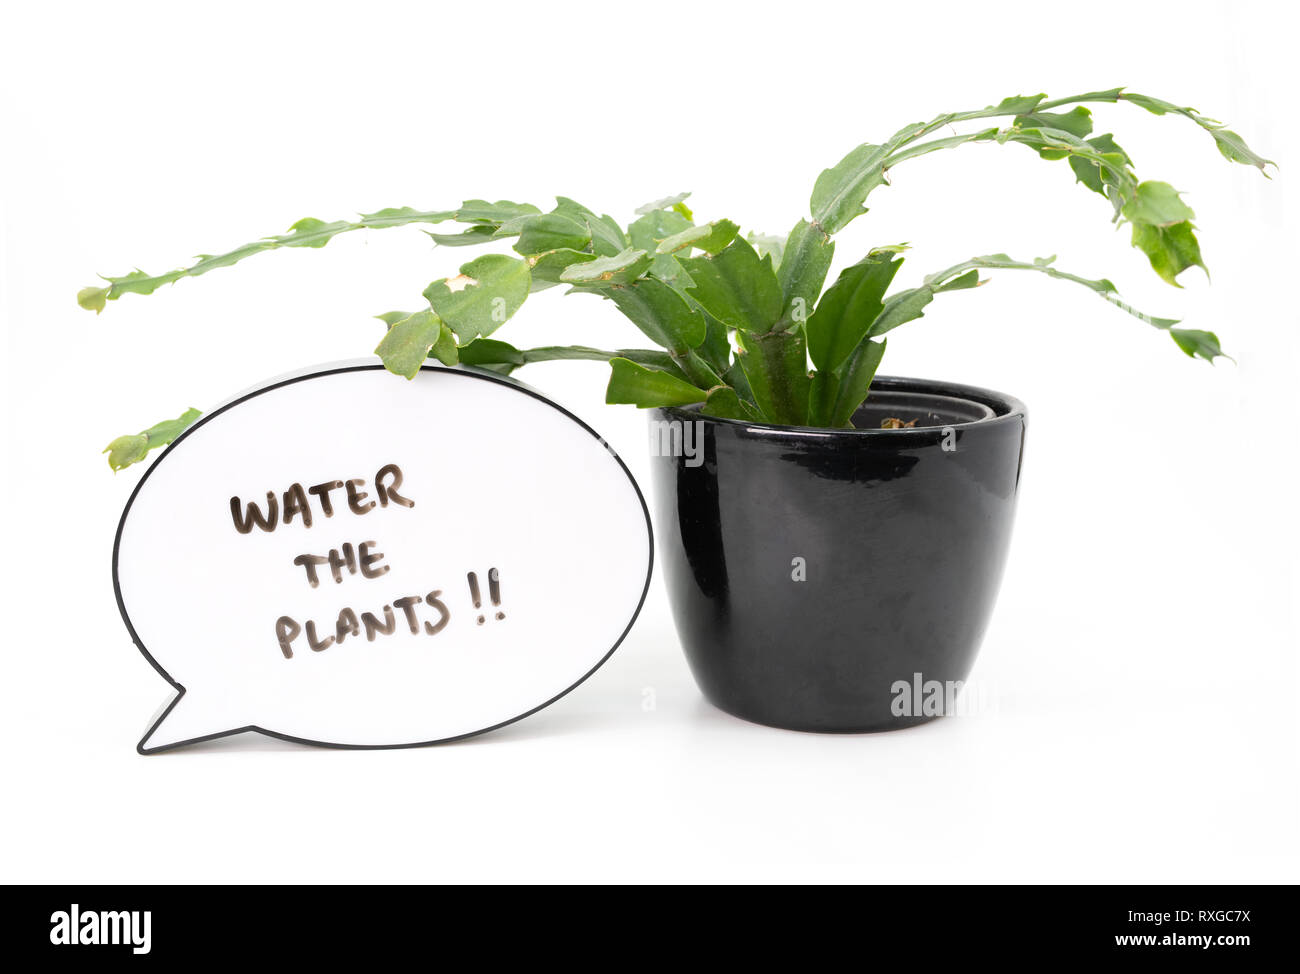 Reminder to water the plants next to a house plant on white background - Stock Image